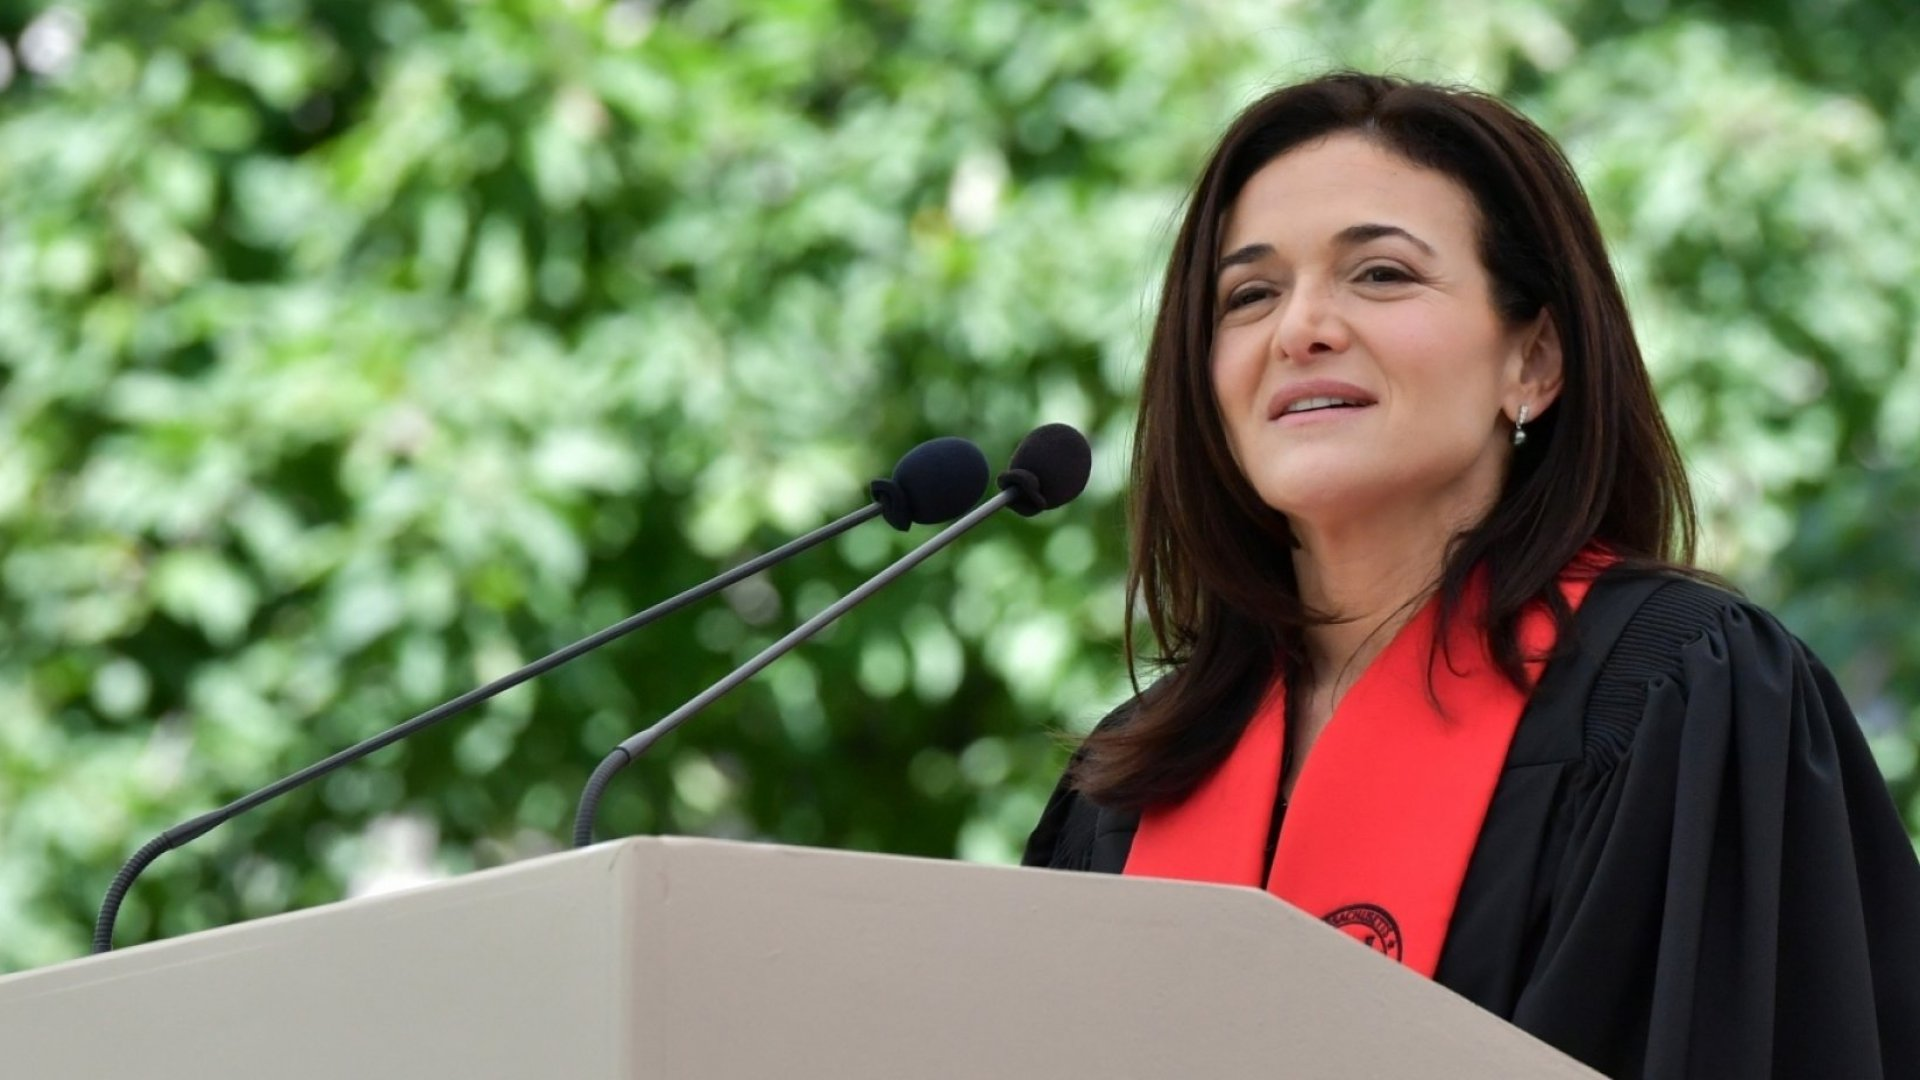 Facebook chief operating officer Sheryl Sandberg gives the address at the 2018 Massachusetts Institute of Technology commencement in Cambridge, Massachusetts, on June 8, 2018.